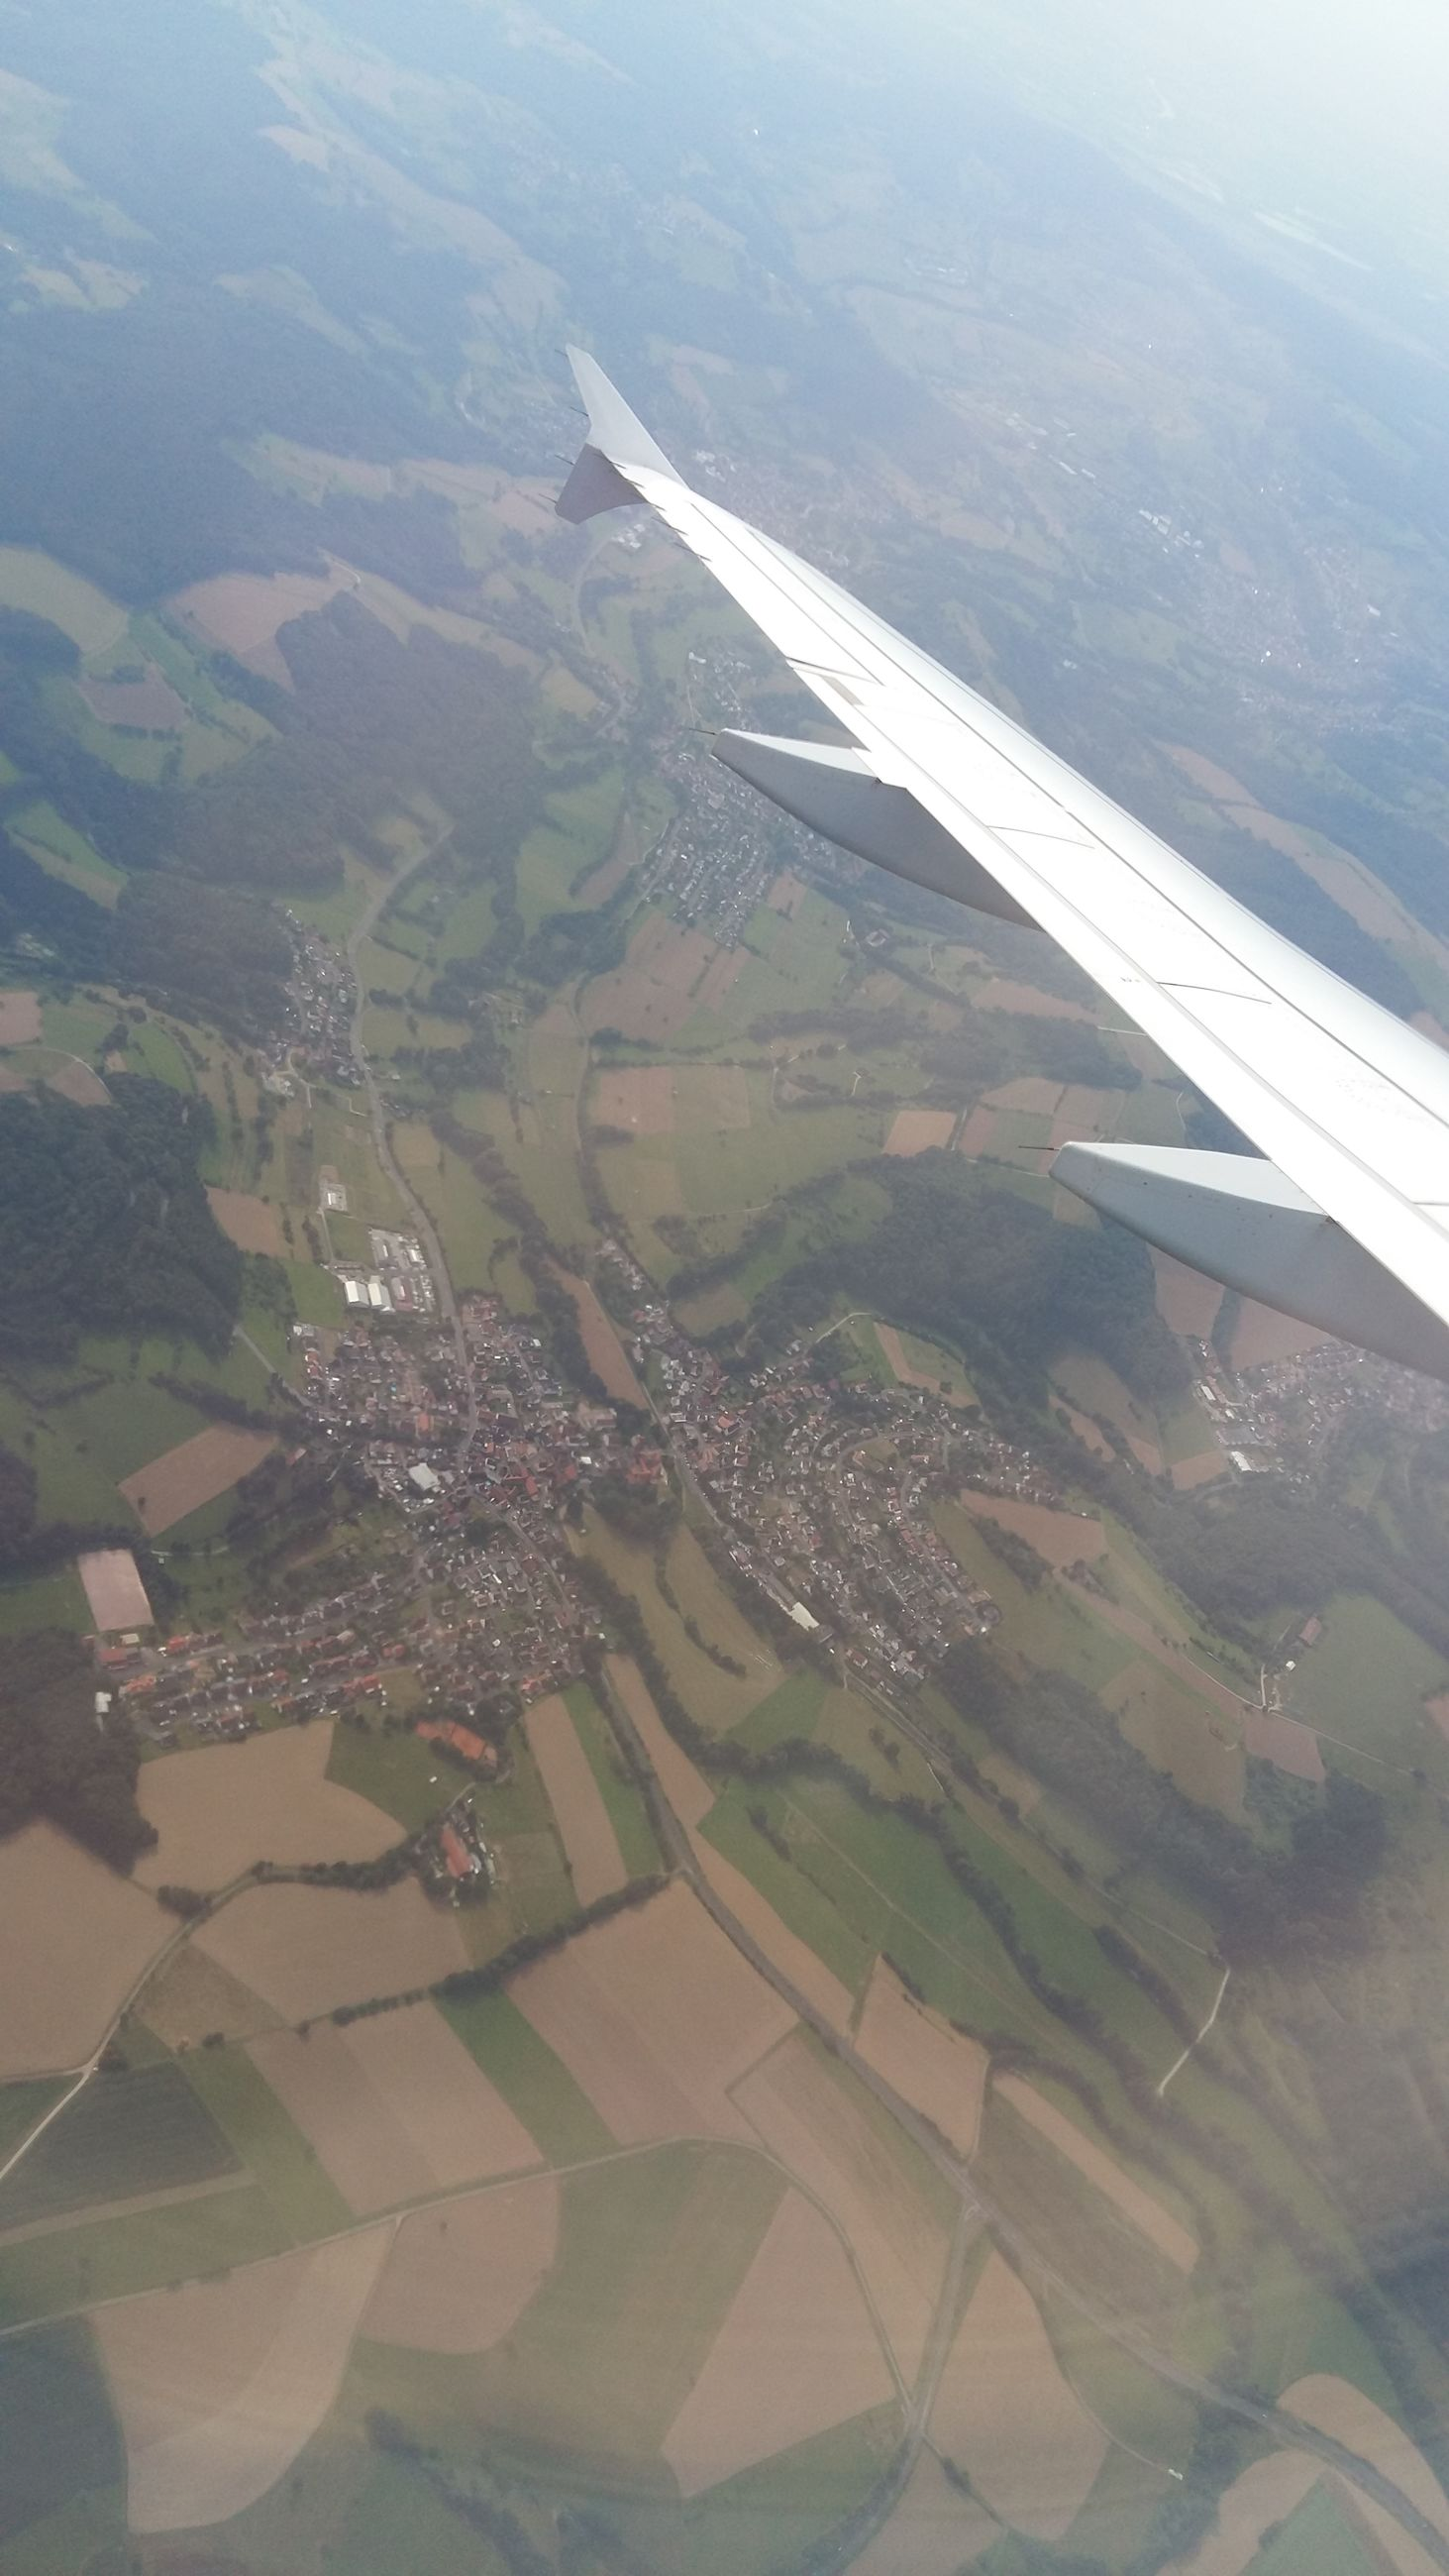 landscape, aerial view, airplane, transportation, aircraft wing, water, scenics, flying, mode of transport, tranquil scene, tranquility, beauty in nature, rural scene, travel, air vehicle, sea, nature, idyllic, agriculture, journey, mountain, day, field, coastline, outdoors, farm, patchwork landscape, cultivated land, distant, wide shot, non-urban scene, airplane wing